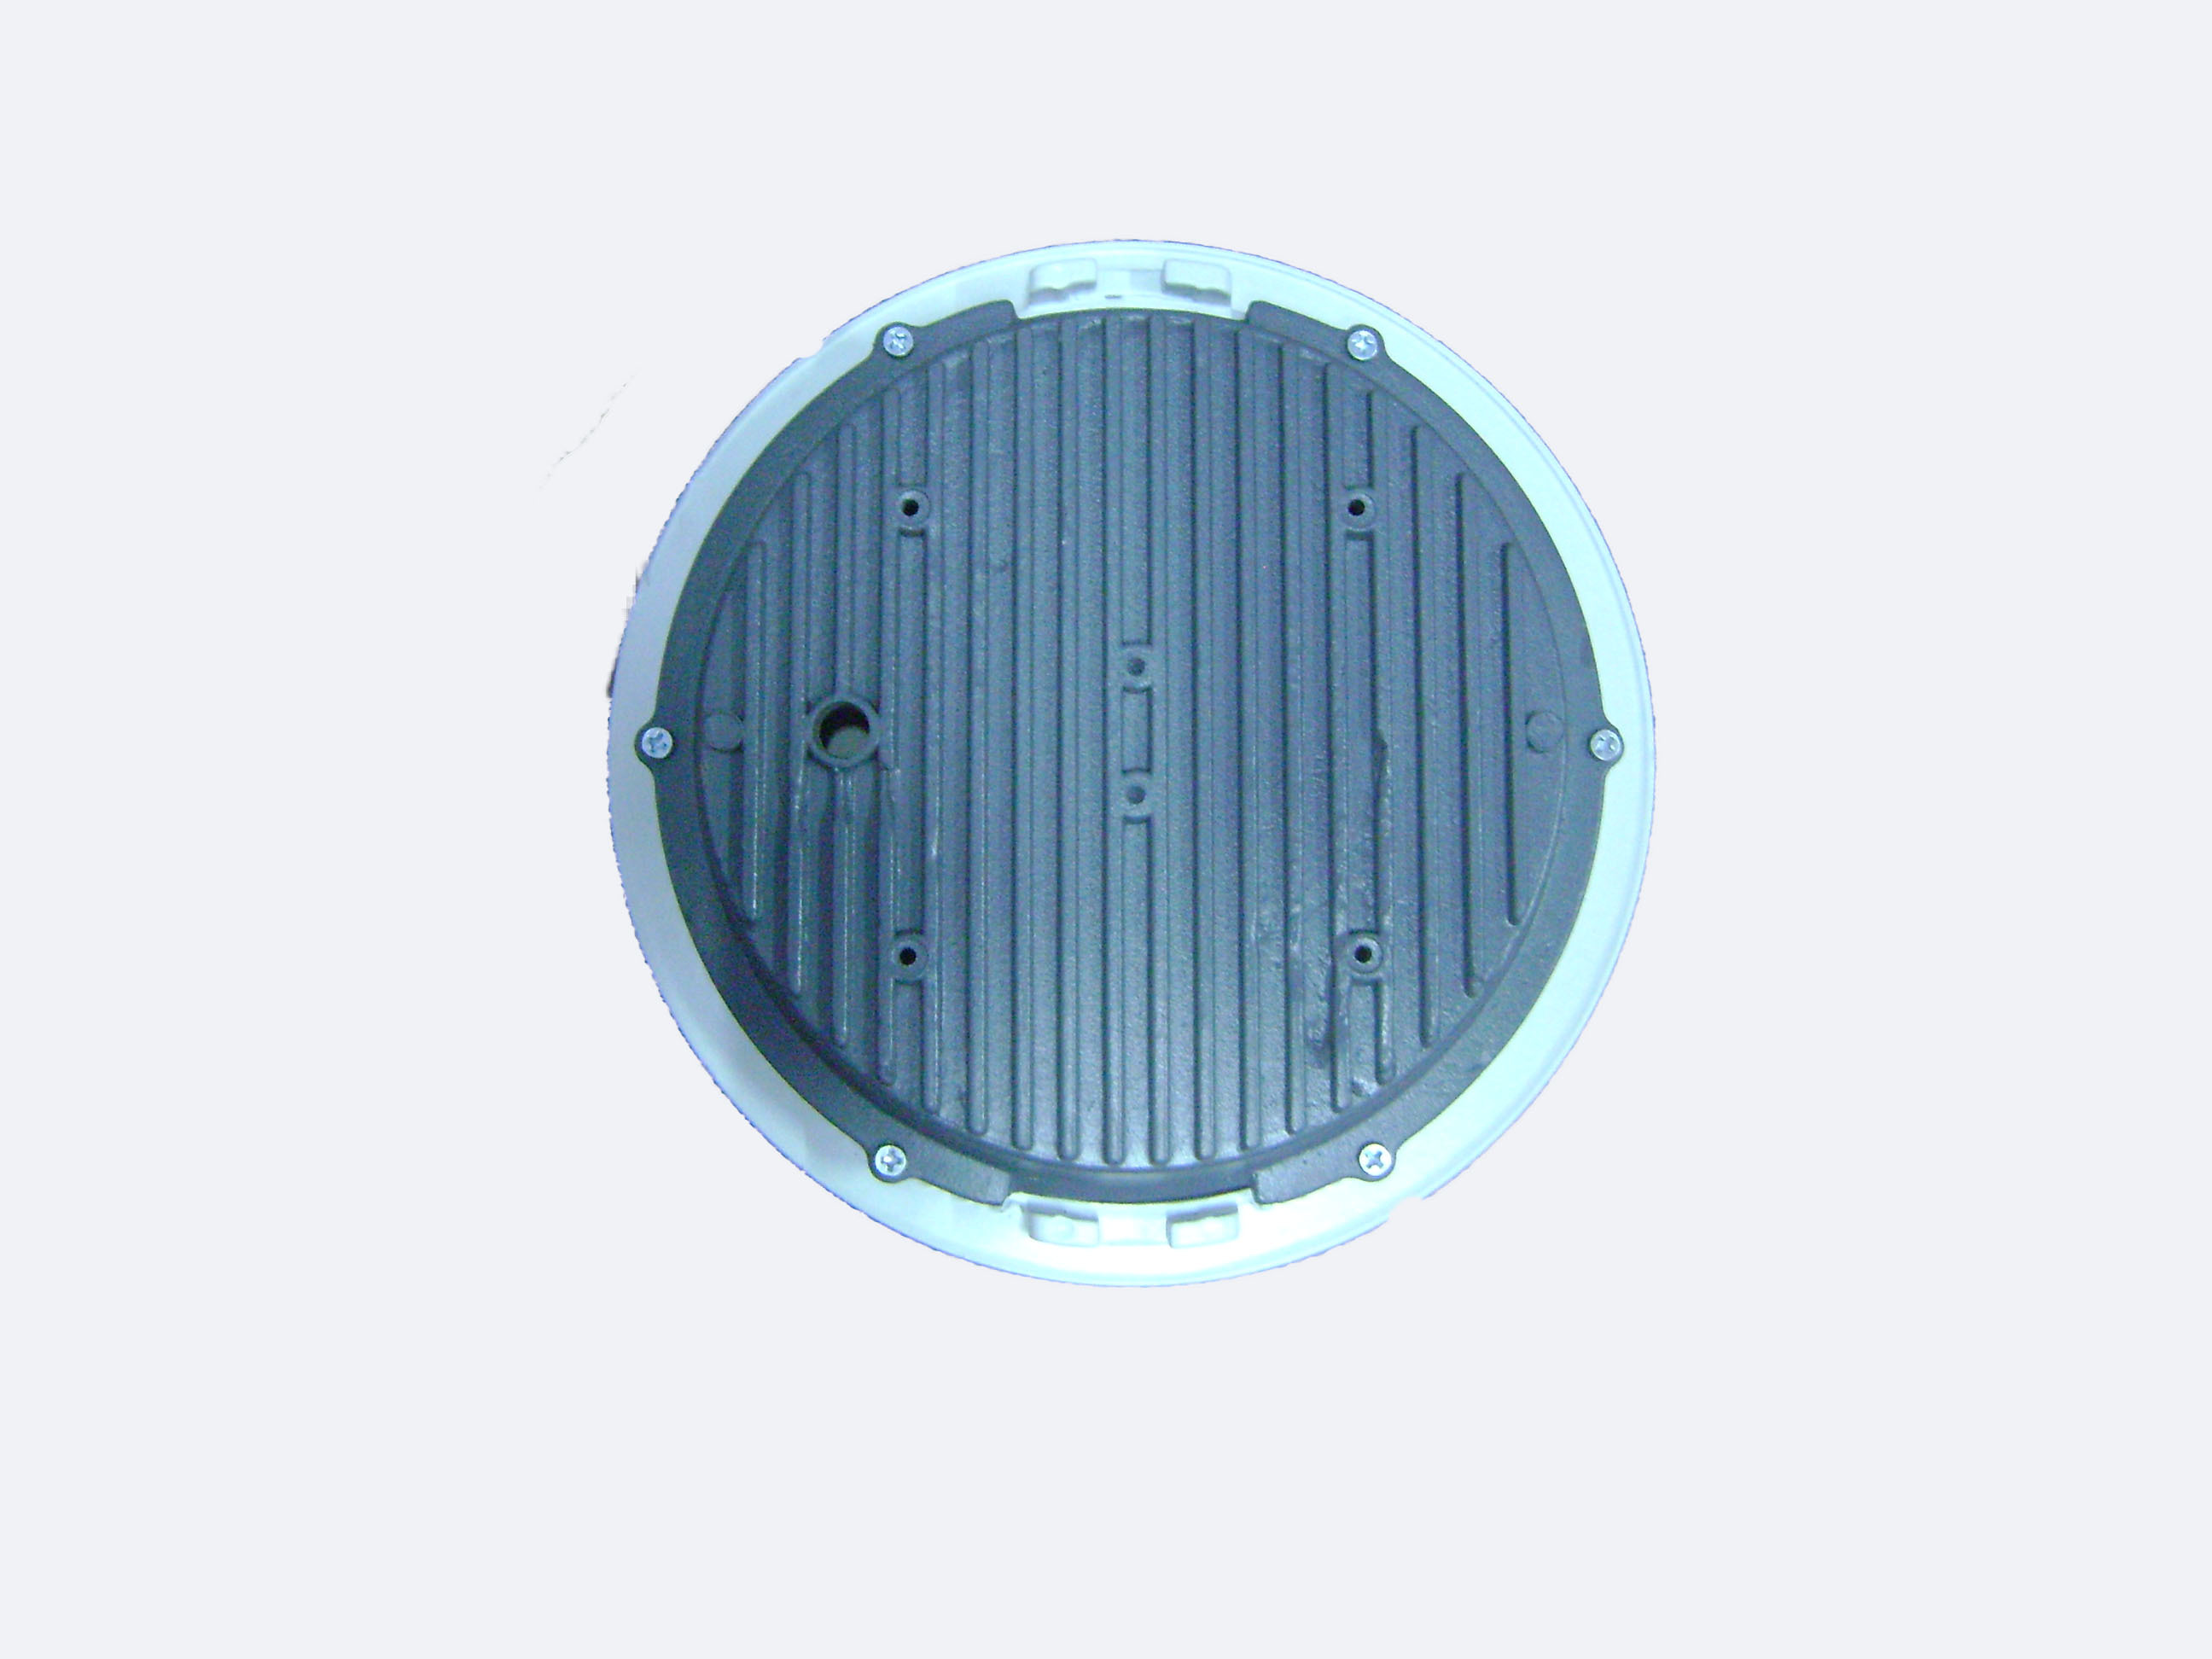 24 W ROUND PANEL BACK LIGHT